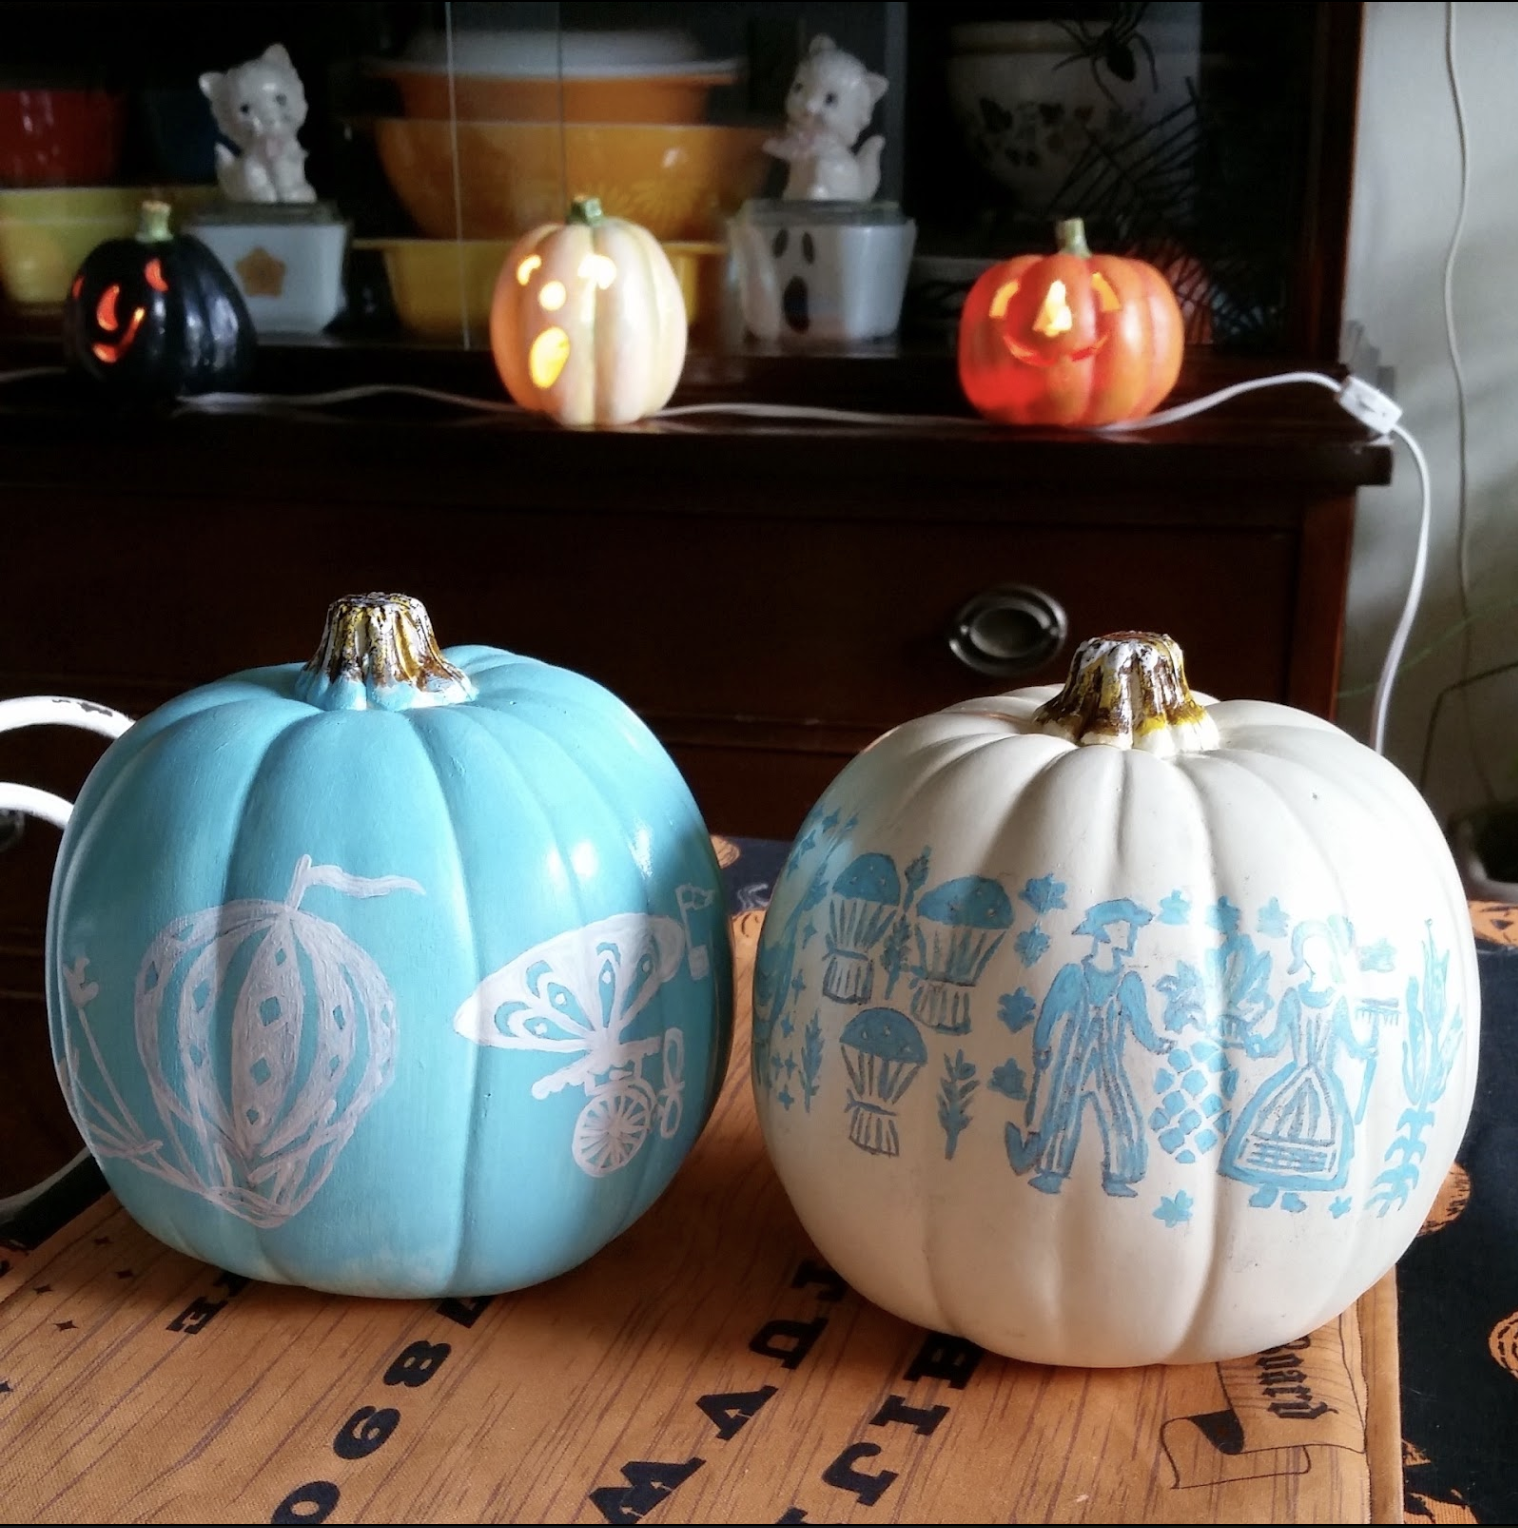 How to make Pyrex painted pumpkins kellyelko.com #pyrex #vintage #fallcrafts #pumpkincrafts #paintedpumpkins #turquoise